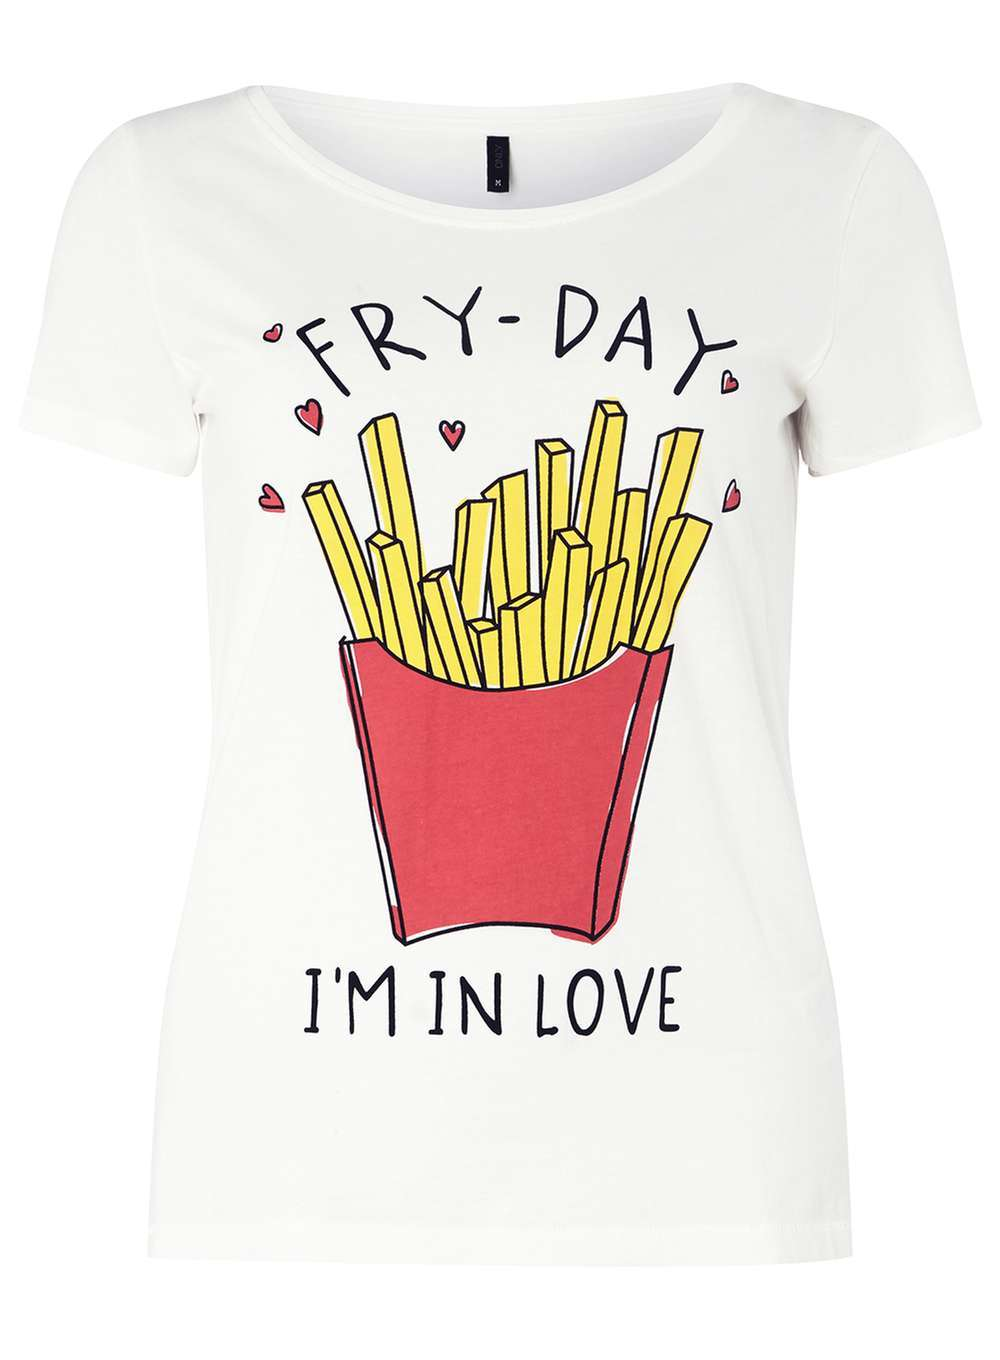 Womens **Only White 'fryday' T Shirt White - neckline: round neck; style: t-shirt; predominant colour: white; secondary colour: true red; occasions: casual; length: standard; fibres: polyester/polyamide - 100%; fit: body skimming; sleeve length: short sleeve; sleeve style: standard; pattern type: fabric; texture group: jersey - stretchy/drapey; pattern: graphic/slogan; multicoloured: multicoloured; season: a/w 2016; wardrobe: highlight; embellishment: contrast fabric; embellishment location: bust